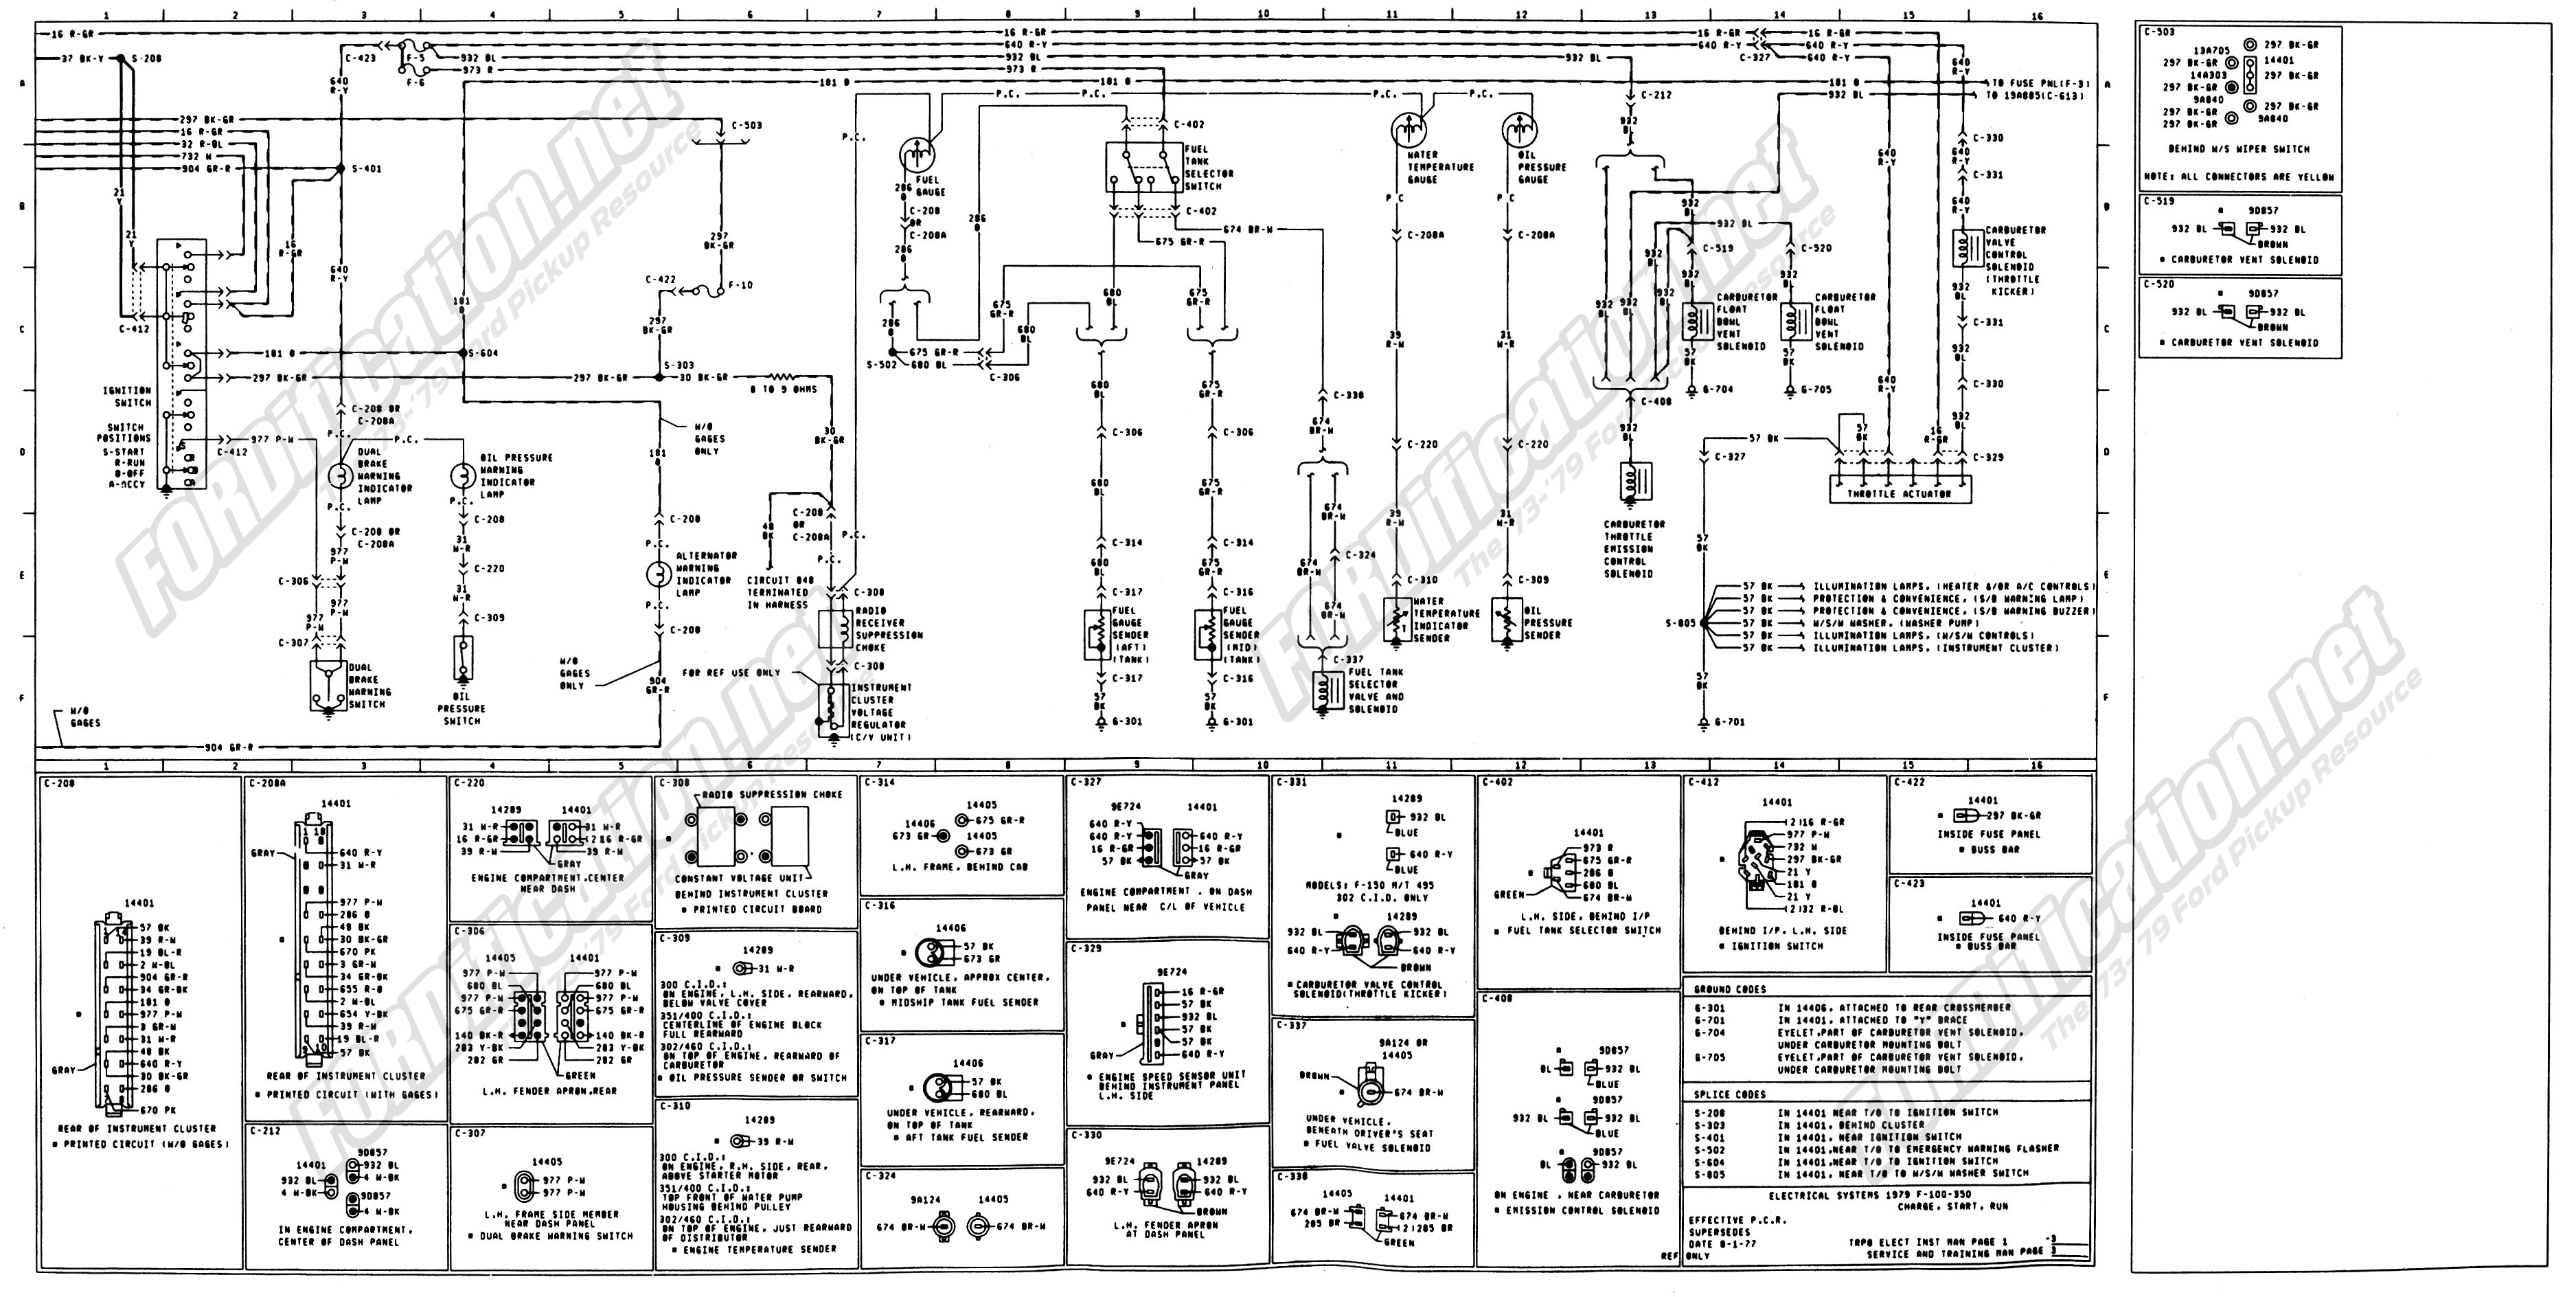 74 Ford Pickup Wiring Diagram - Wiring Diagram Section O Ford Explorer Wiring Diagram on